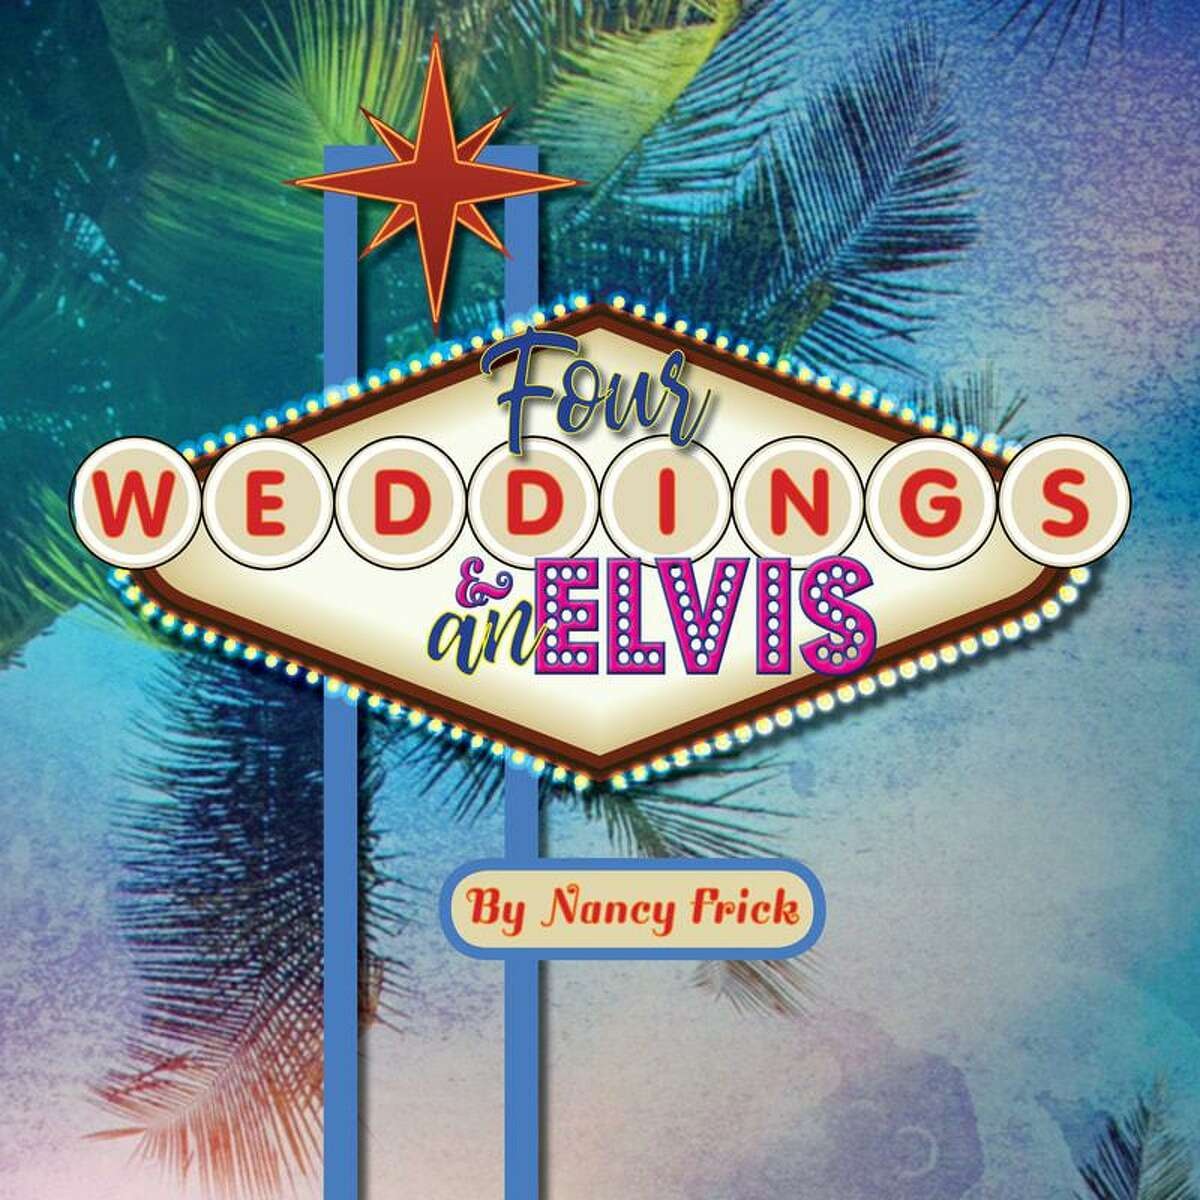 Eastbound Theatre will hold auditions for Four Weddings and An Elvis on Tuesday, Nov. 12, from 7-9 p.m., at the MAC, and Thursday, Nov. 14, from 7-9 p.m., at the Margaret Egan Center.